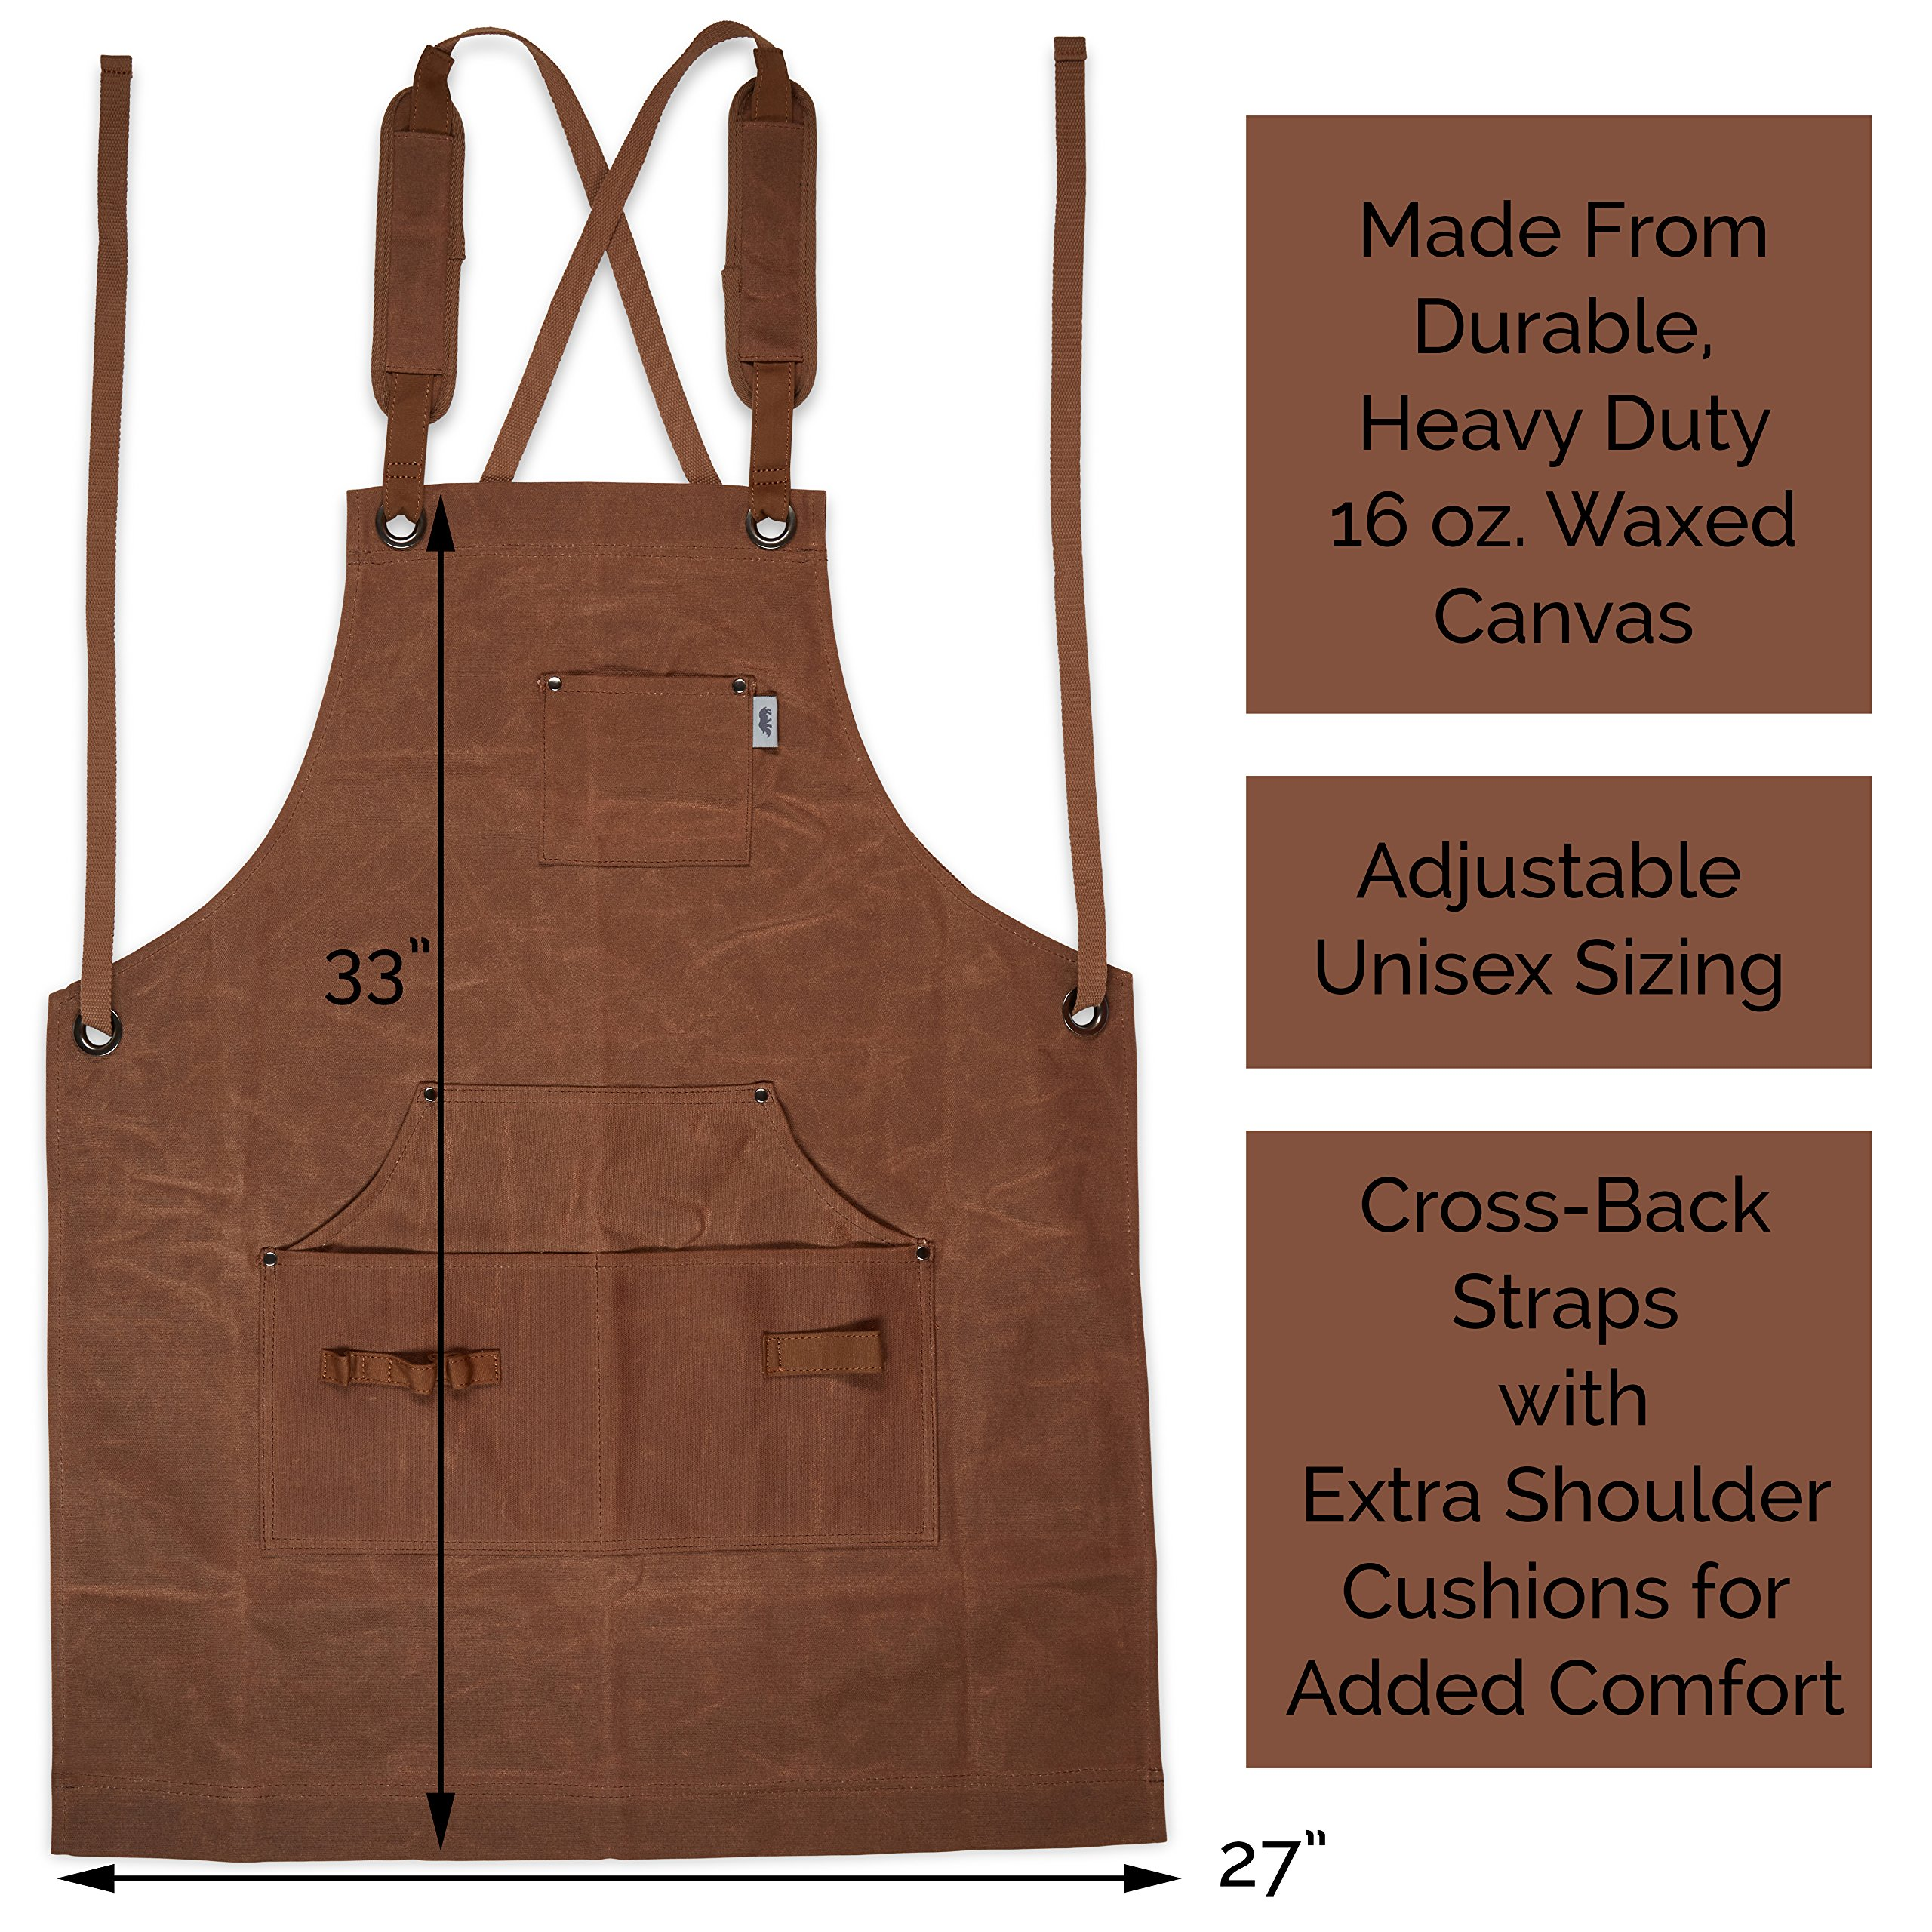 Heavy-Duty Waxed-Canvas Work Apron for Men and Women with Pockets for Tools Cross-Back Straps  – Adjustable from M to XXL (Brown) by Premium Rhino (Image #2)